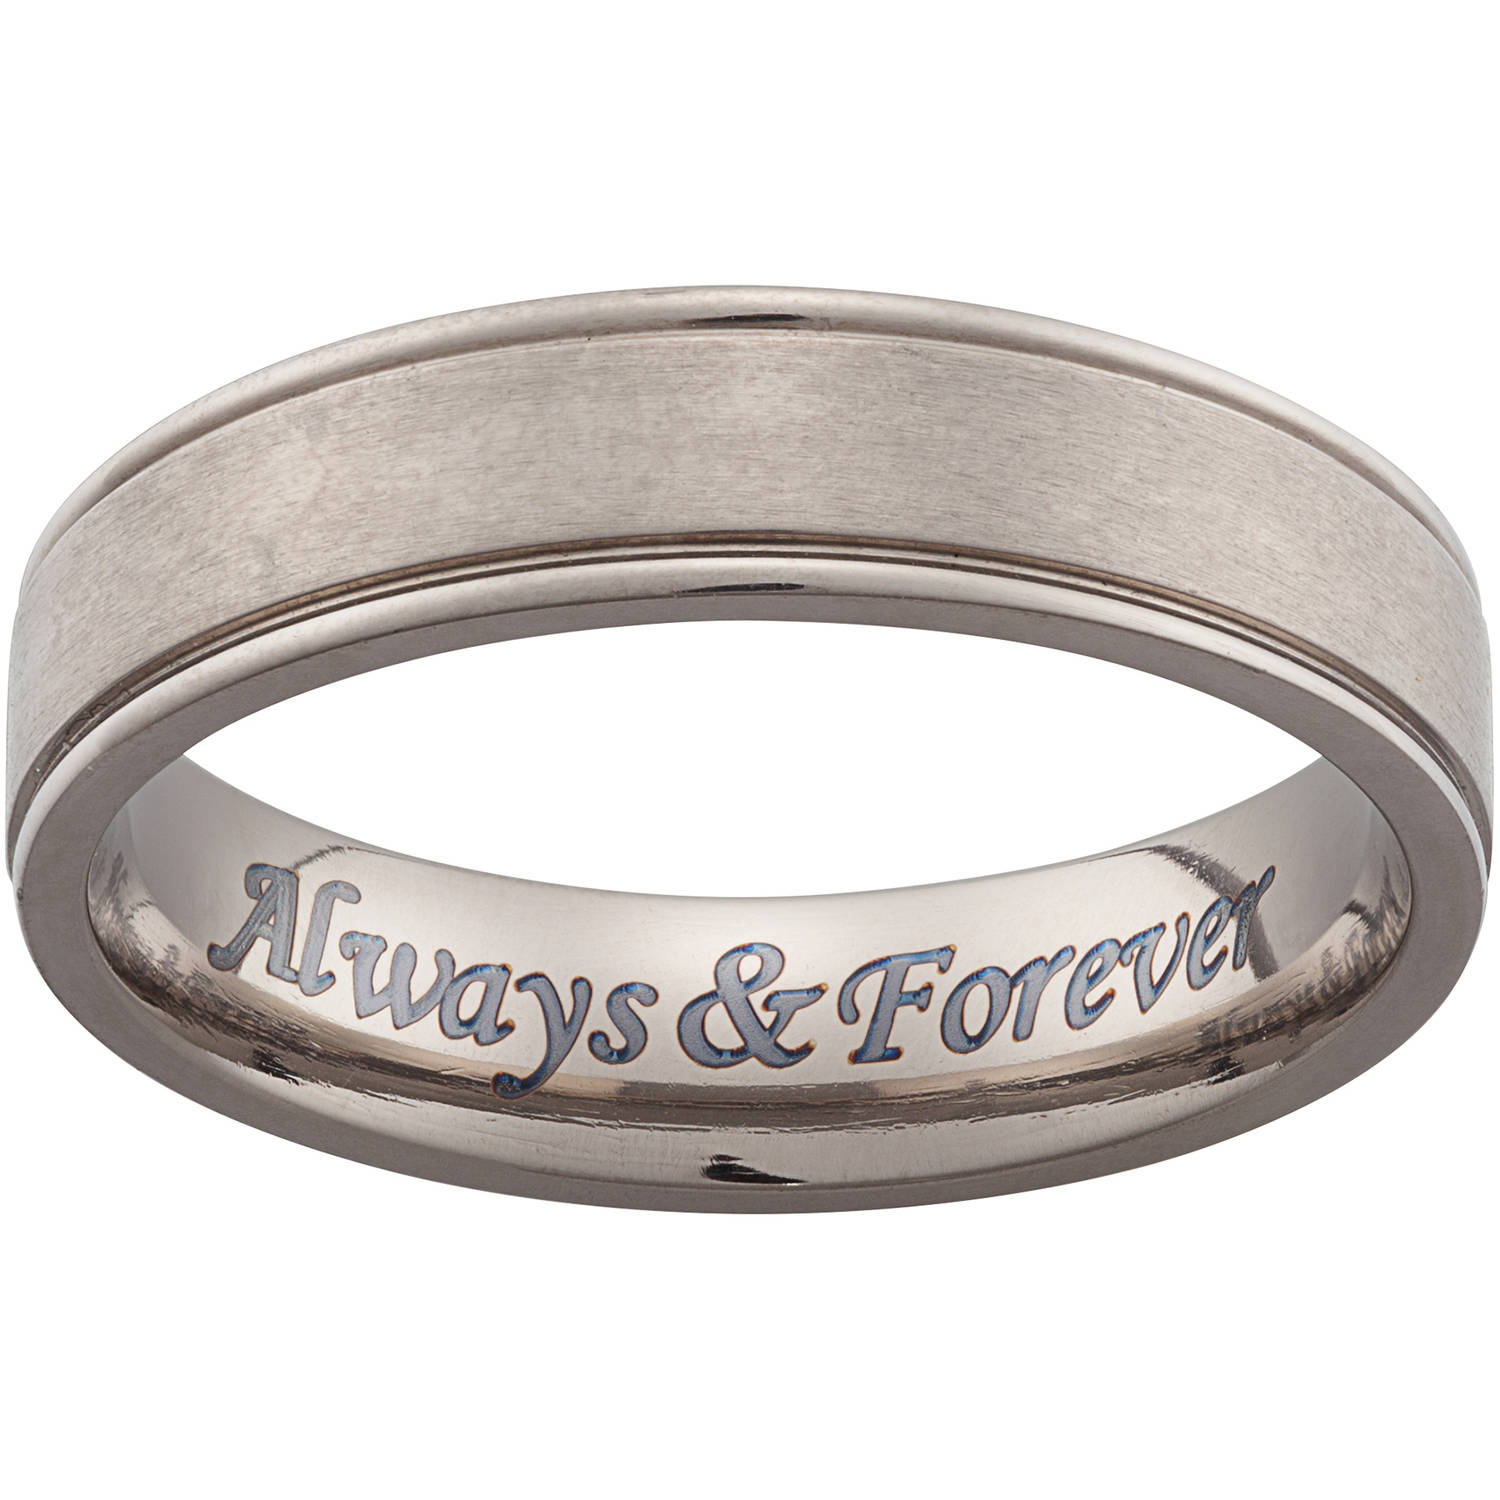 Personalized Men's Titanium Engraved Beveled Band